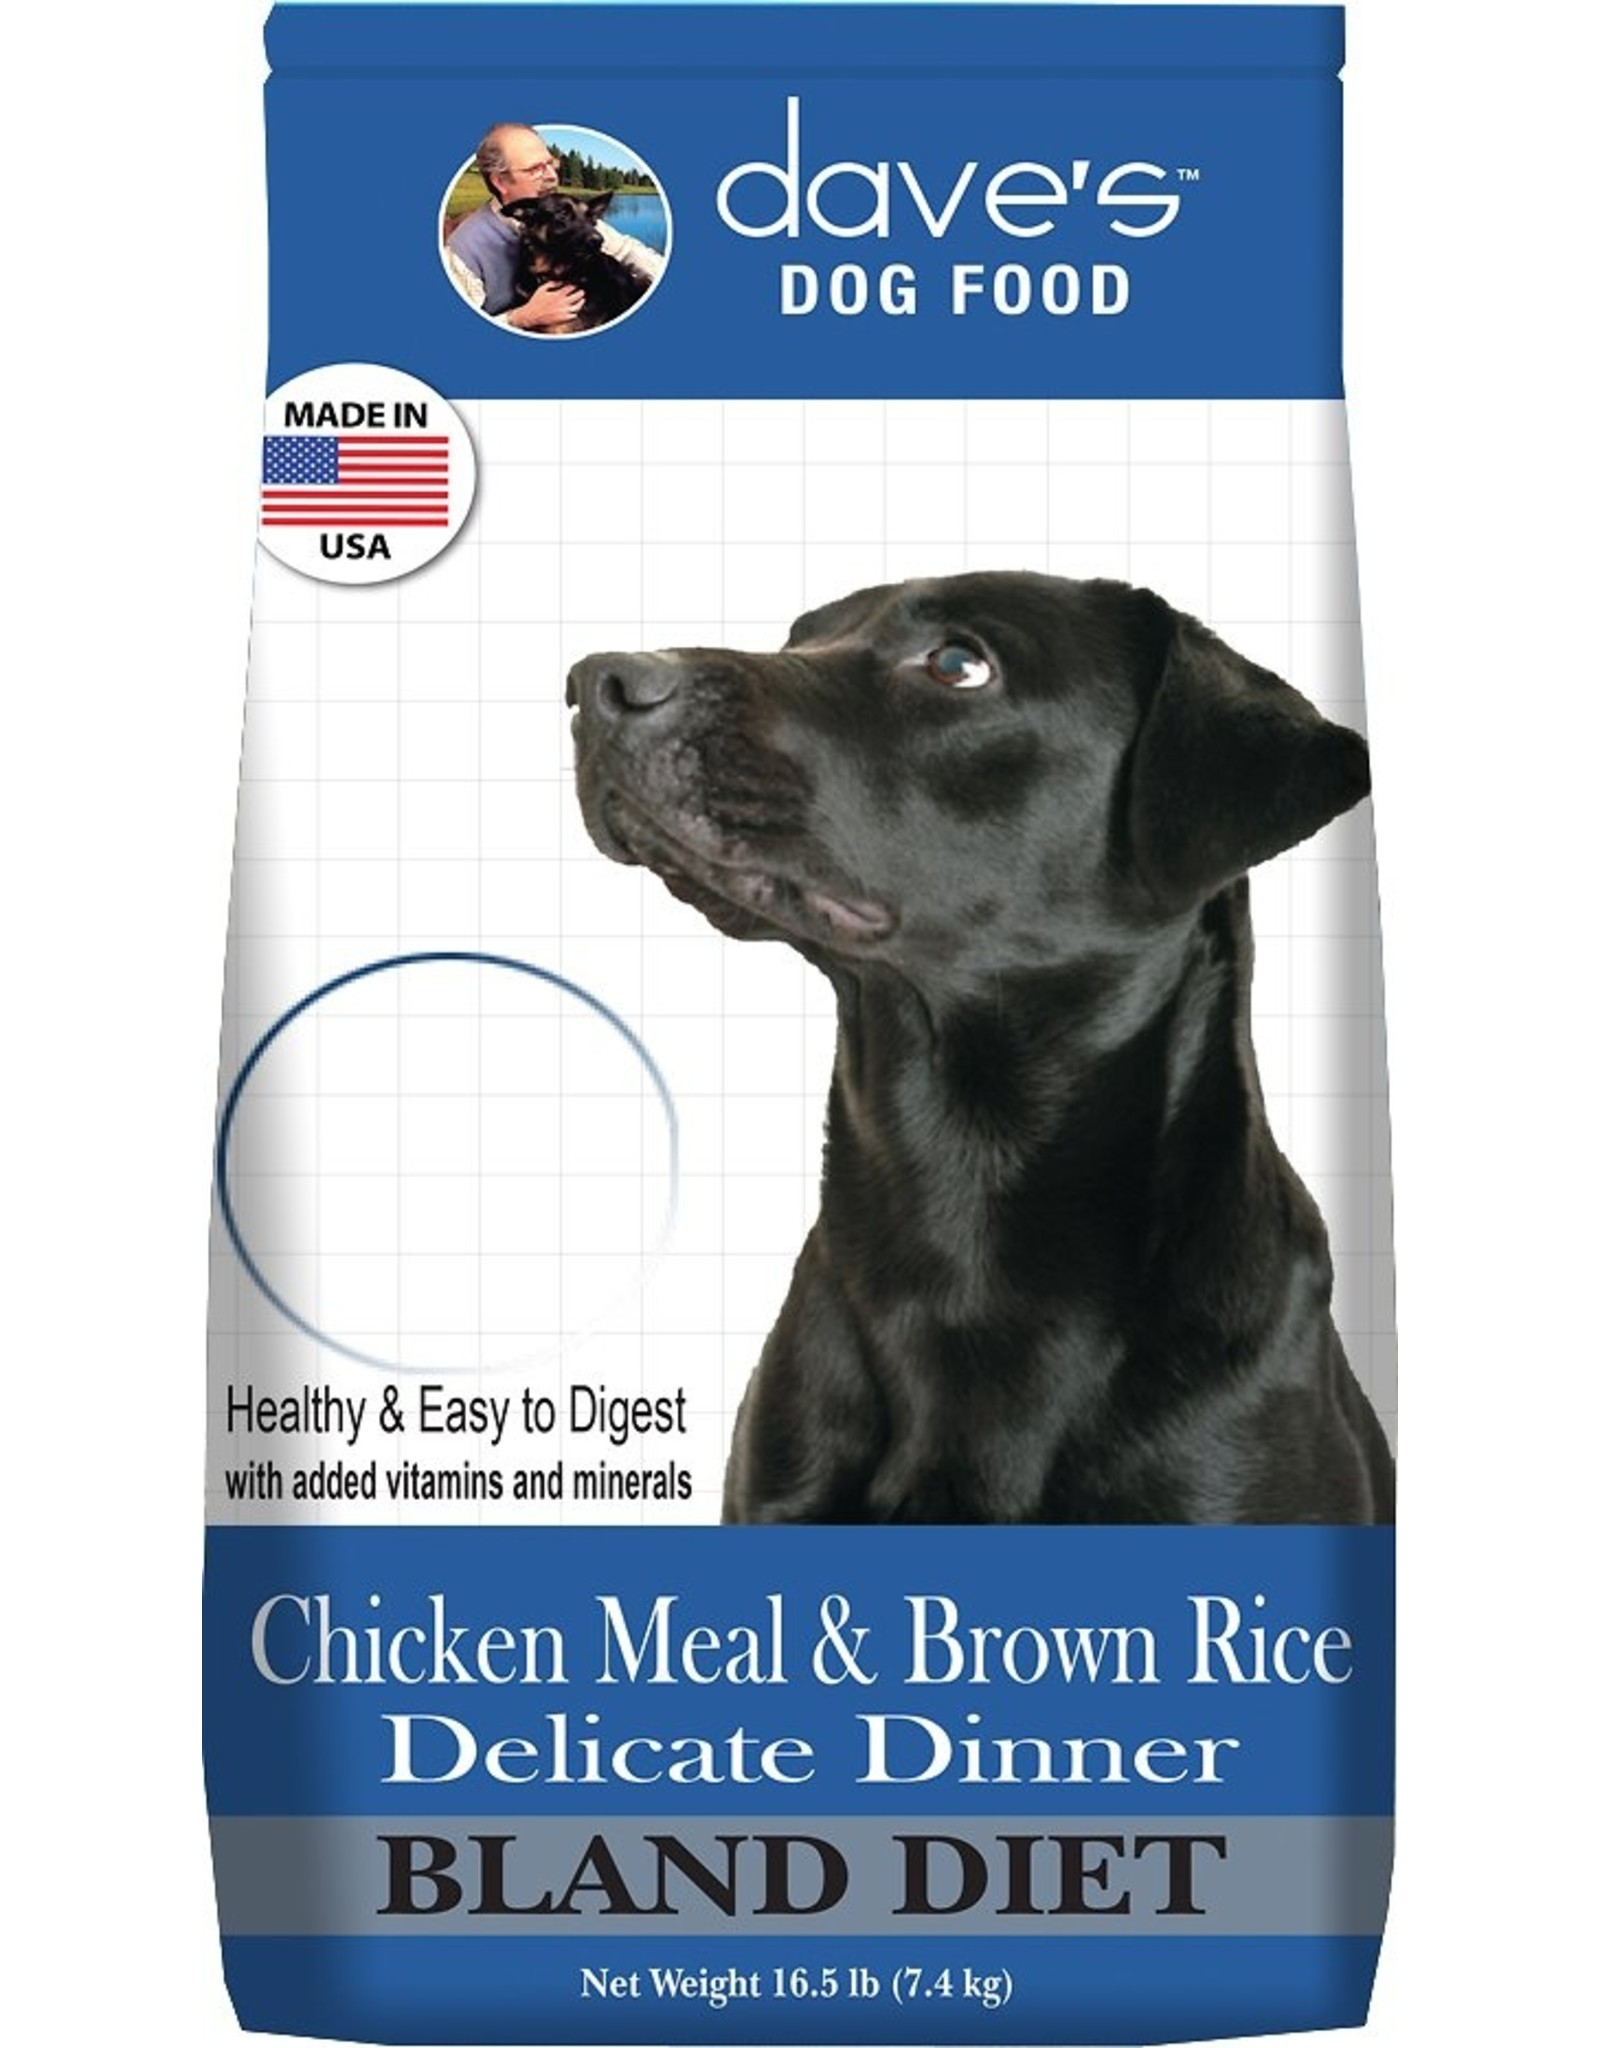 Daves Dog Dry Delicate Dinner Chicken Meal and Brown Rice 4lb